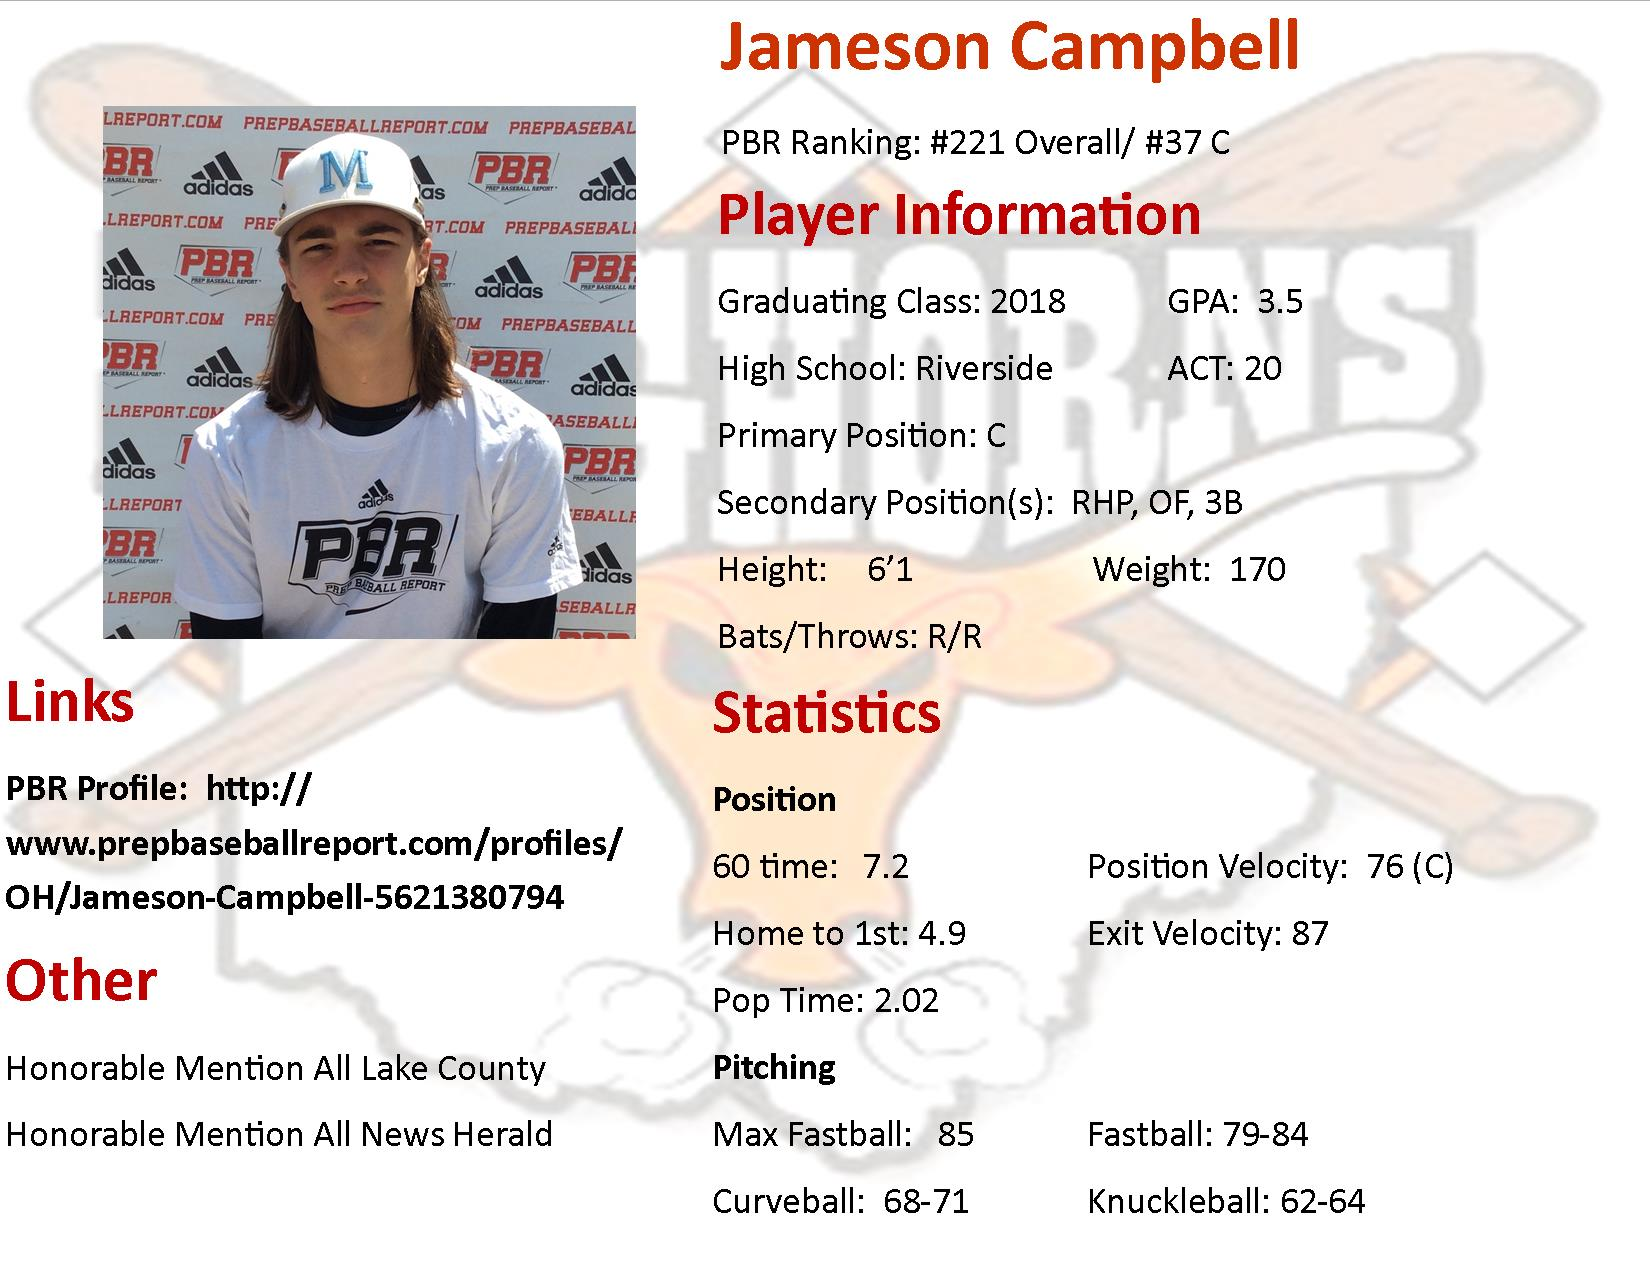 Jameson Campbell